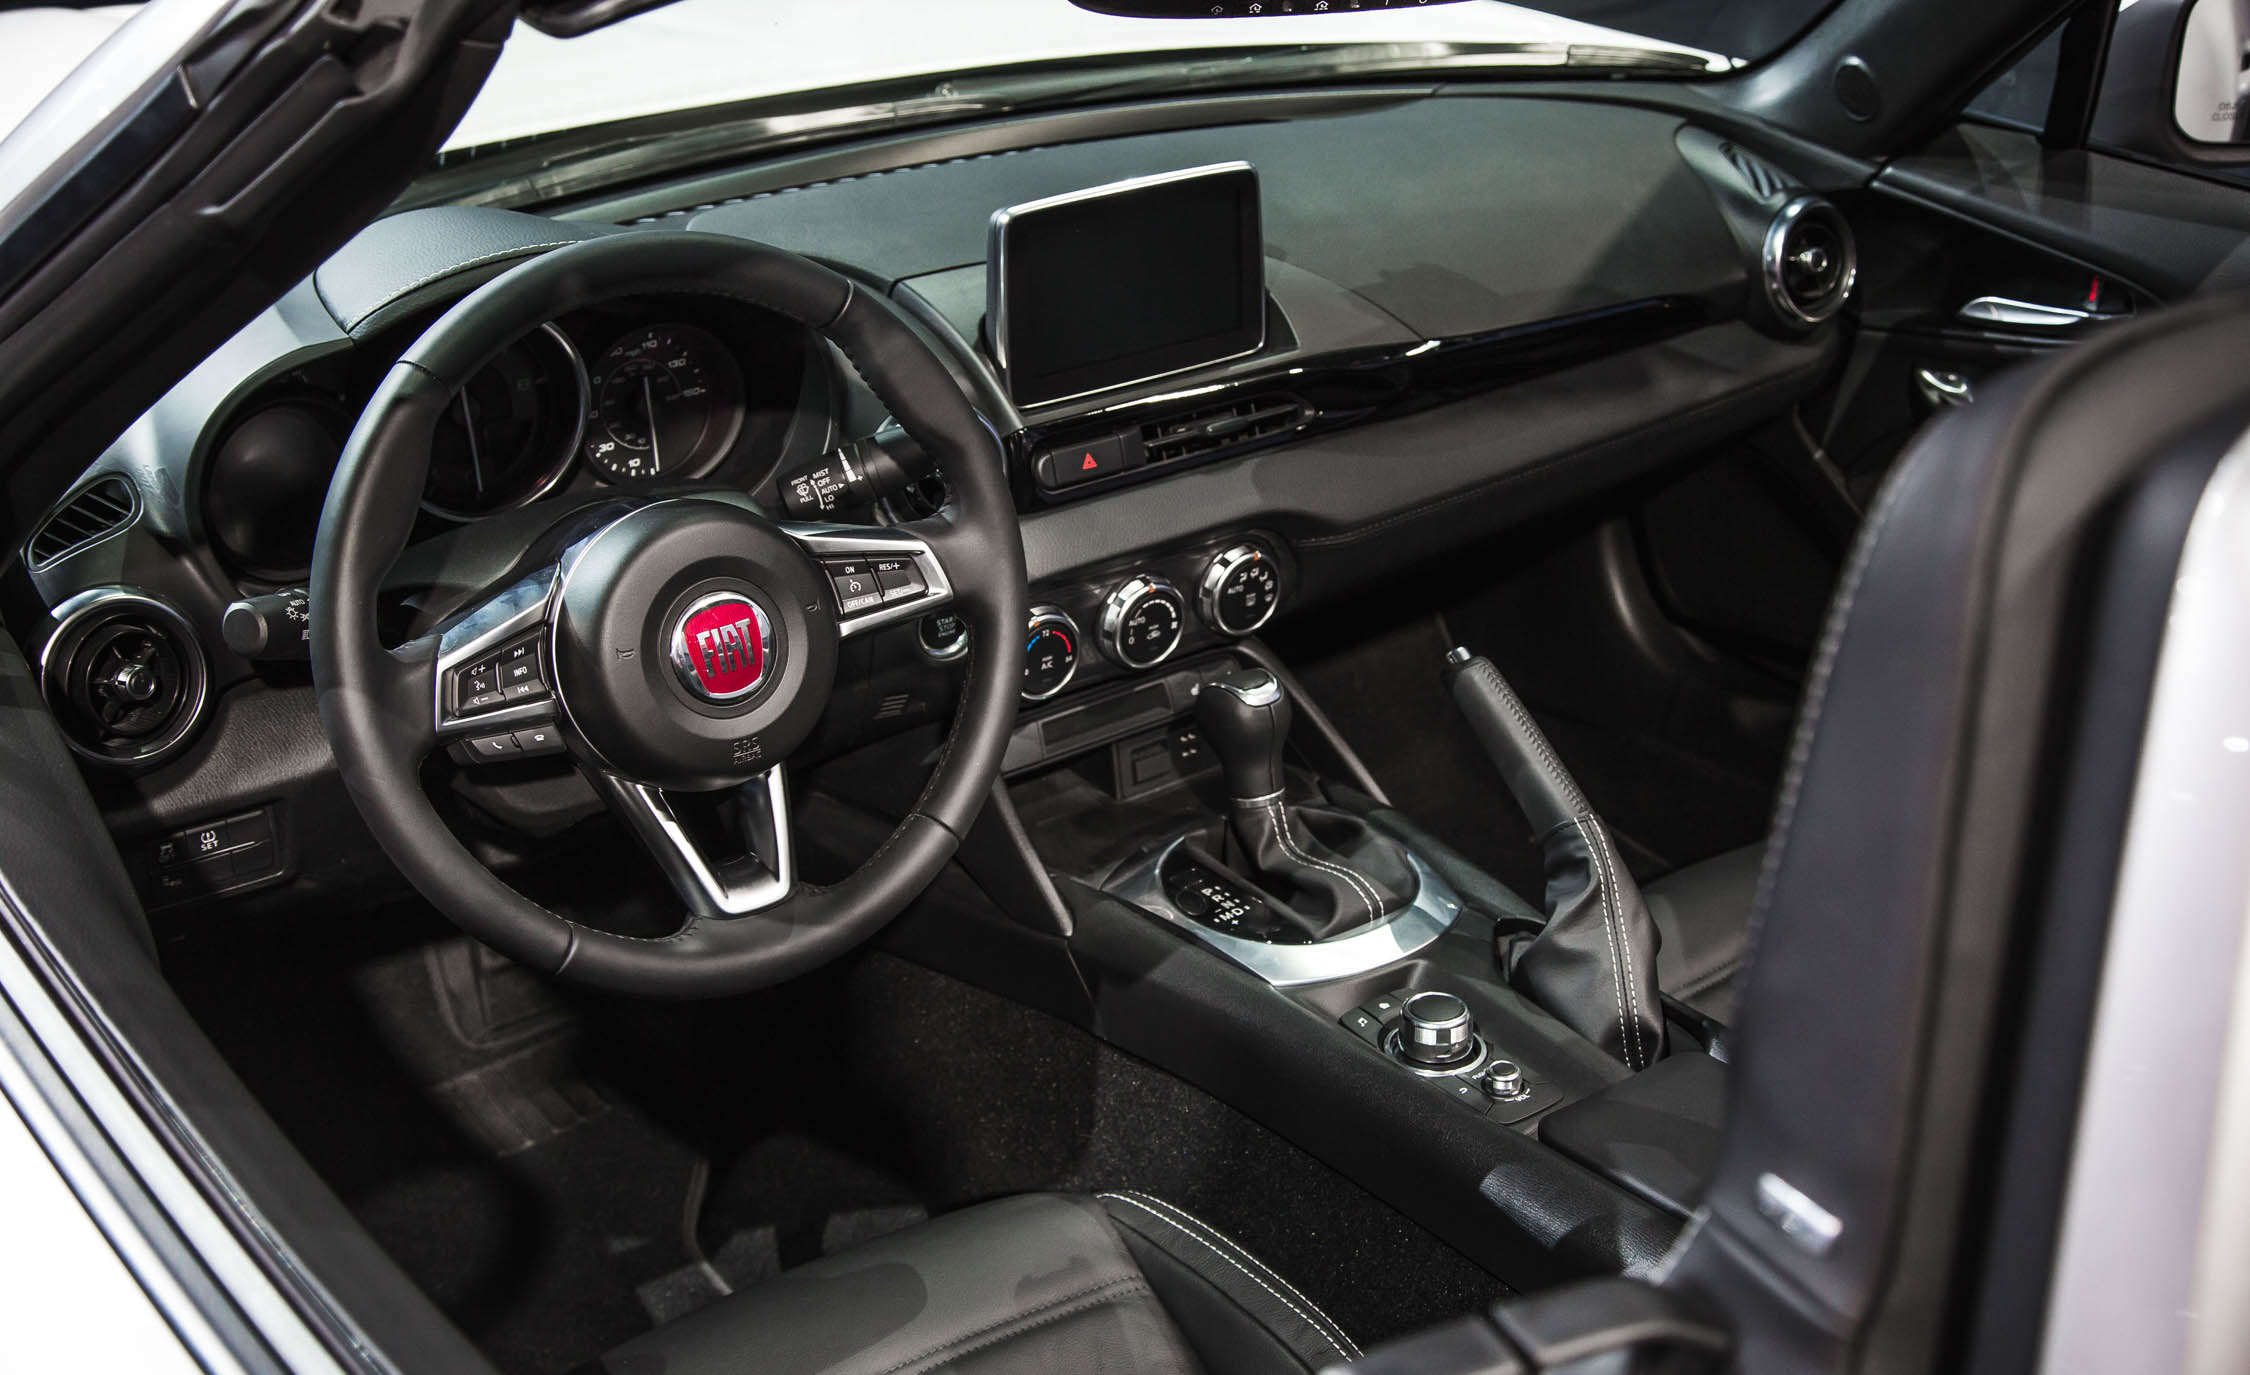 2017 Fiat 124 Spider Interior Cockpit And Dashboard (Photo 16 of 23)